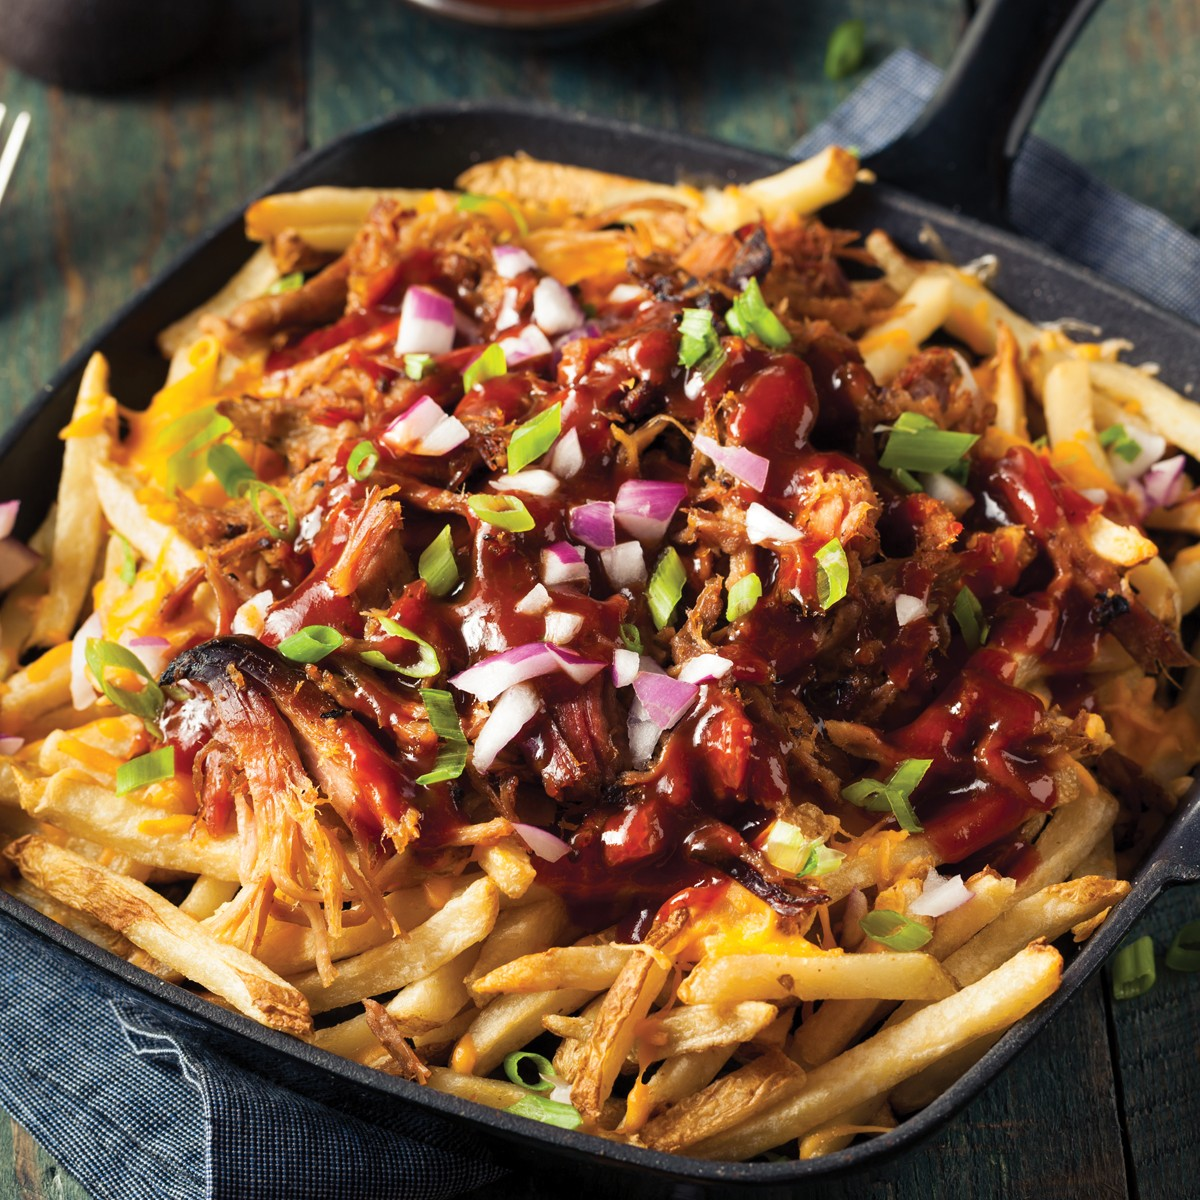 Pulled Pork Loaded Fries - Three Aussie Farmers Slow Cooked BBQ Pulled Pork